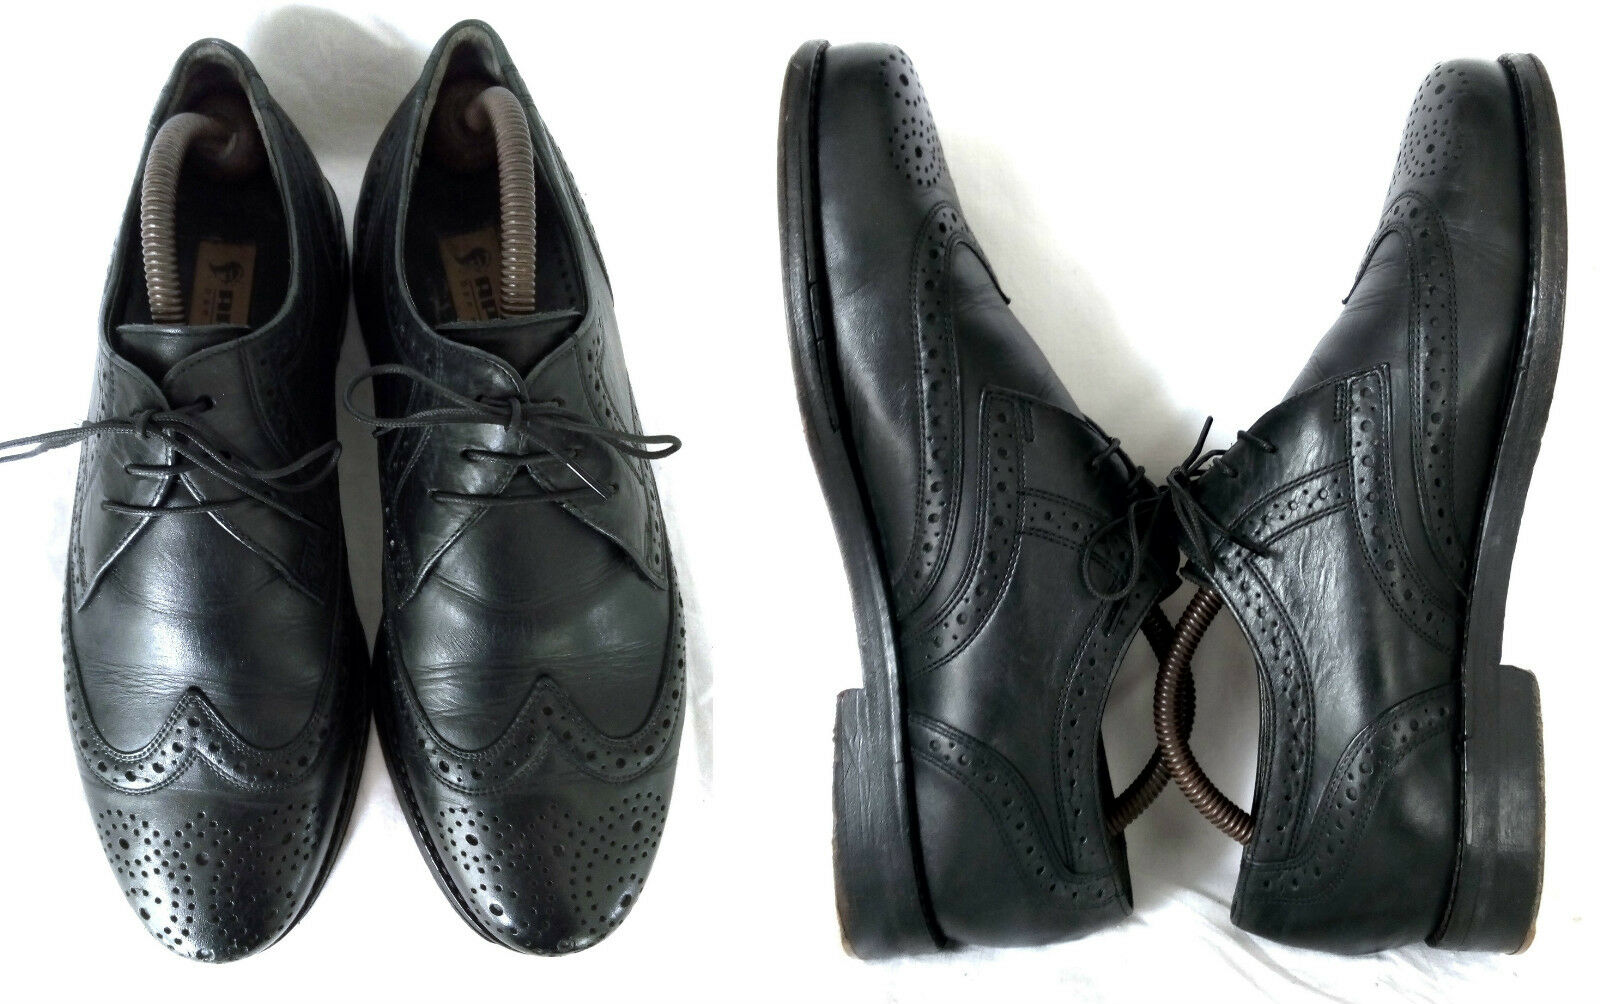 Apollo vintage full brogue derby Business caballero caballero caballero zapatos negro de cuero 6/39,5 9a593d